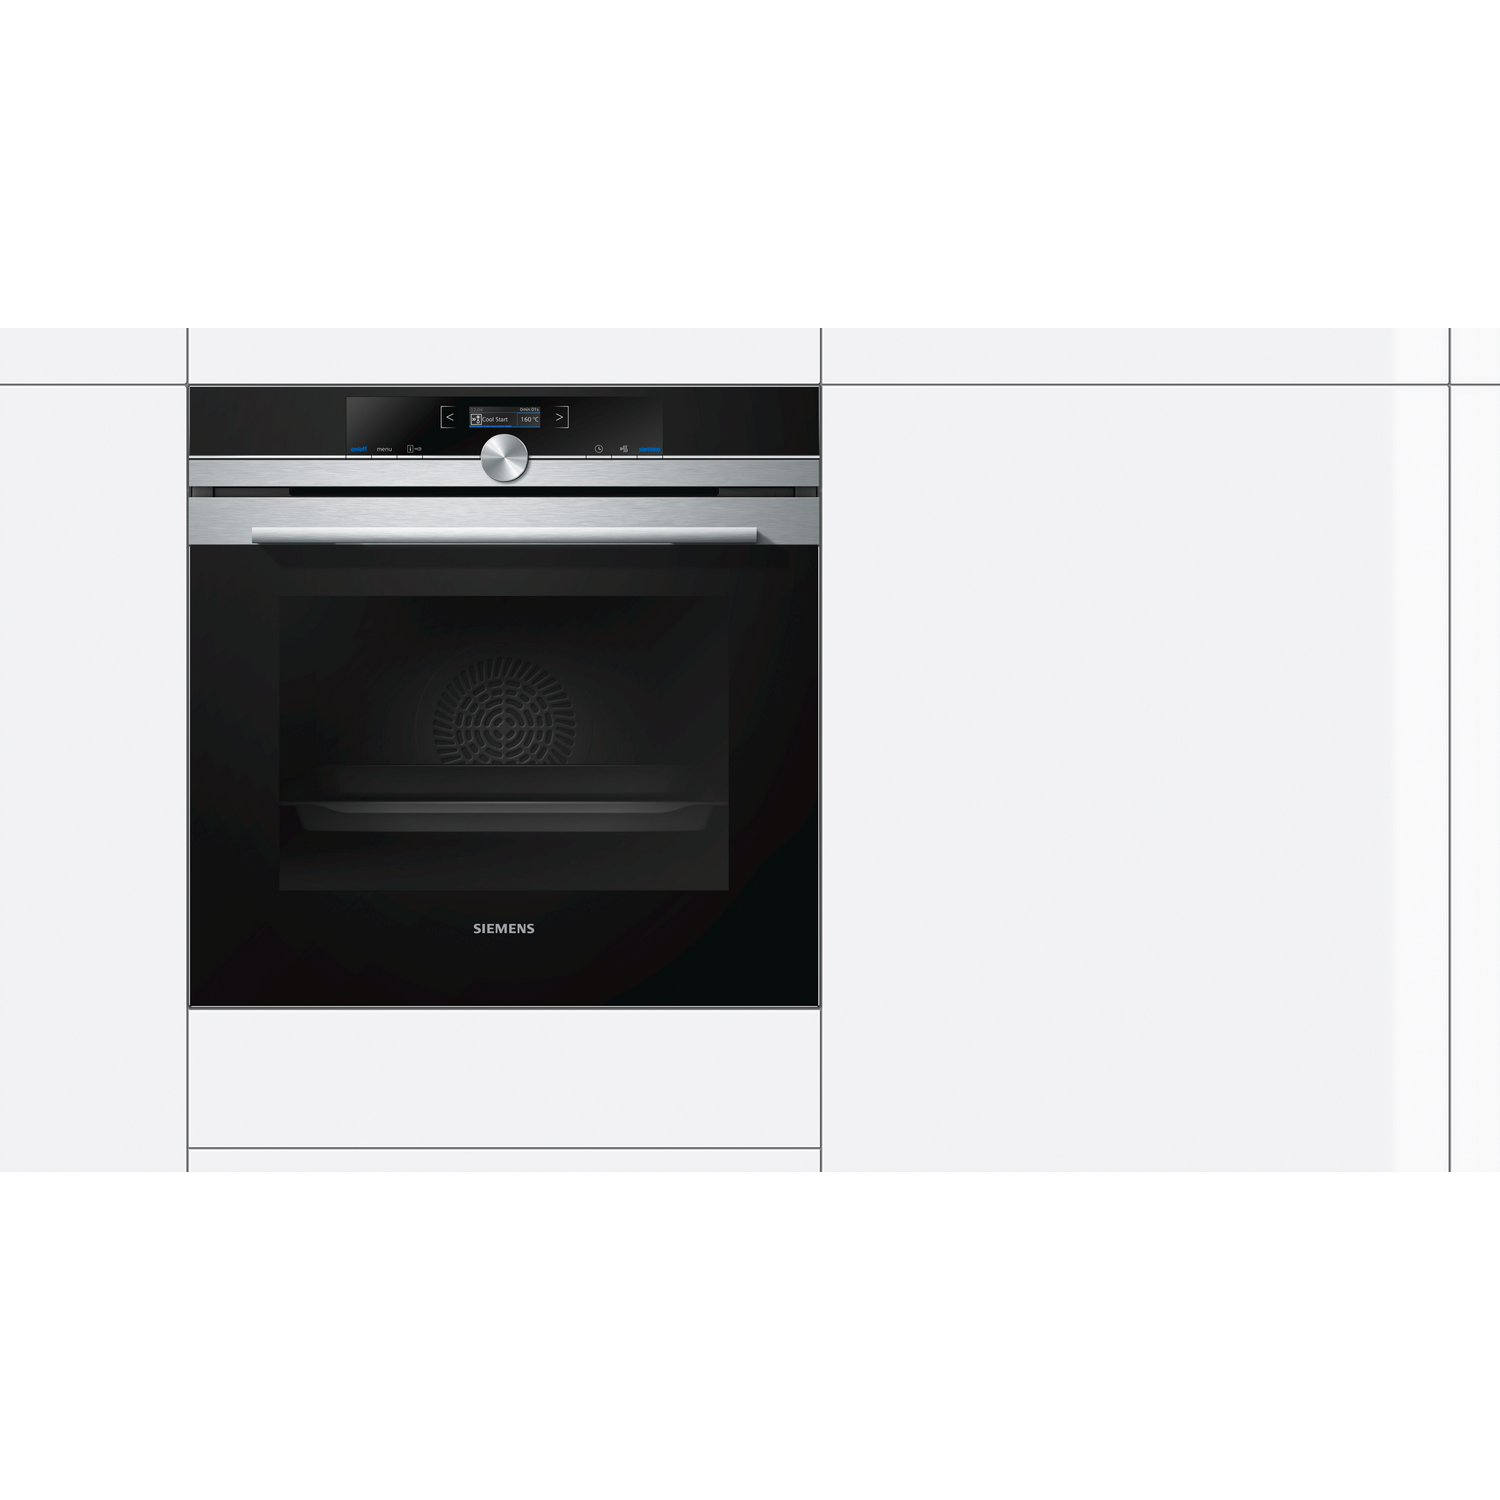 siemens hb672gbs1 backofen backofen mit pyrolyse ebay. Black Bedroom Furniture Sets. Home Design Ideas